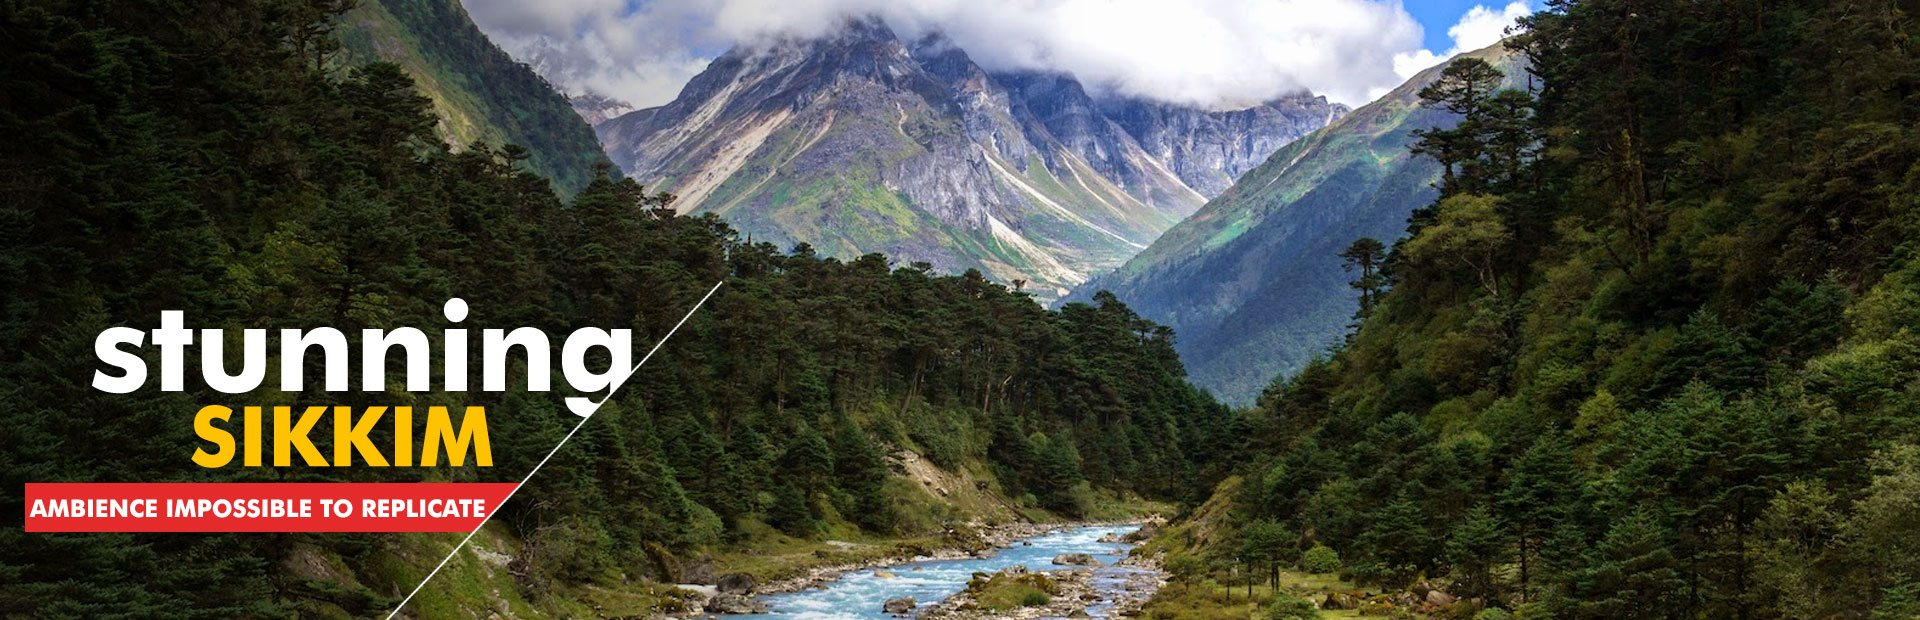 Sikkim Tours & Travel - RS Travels